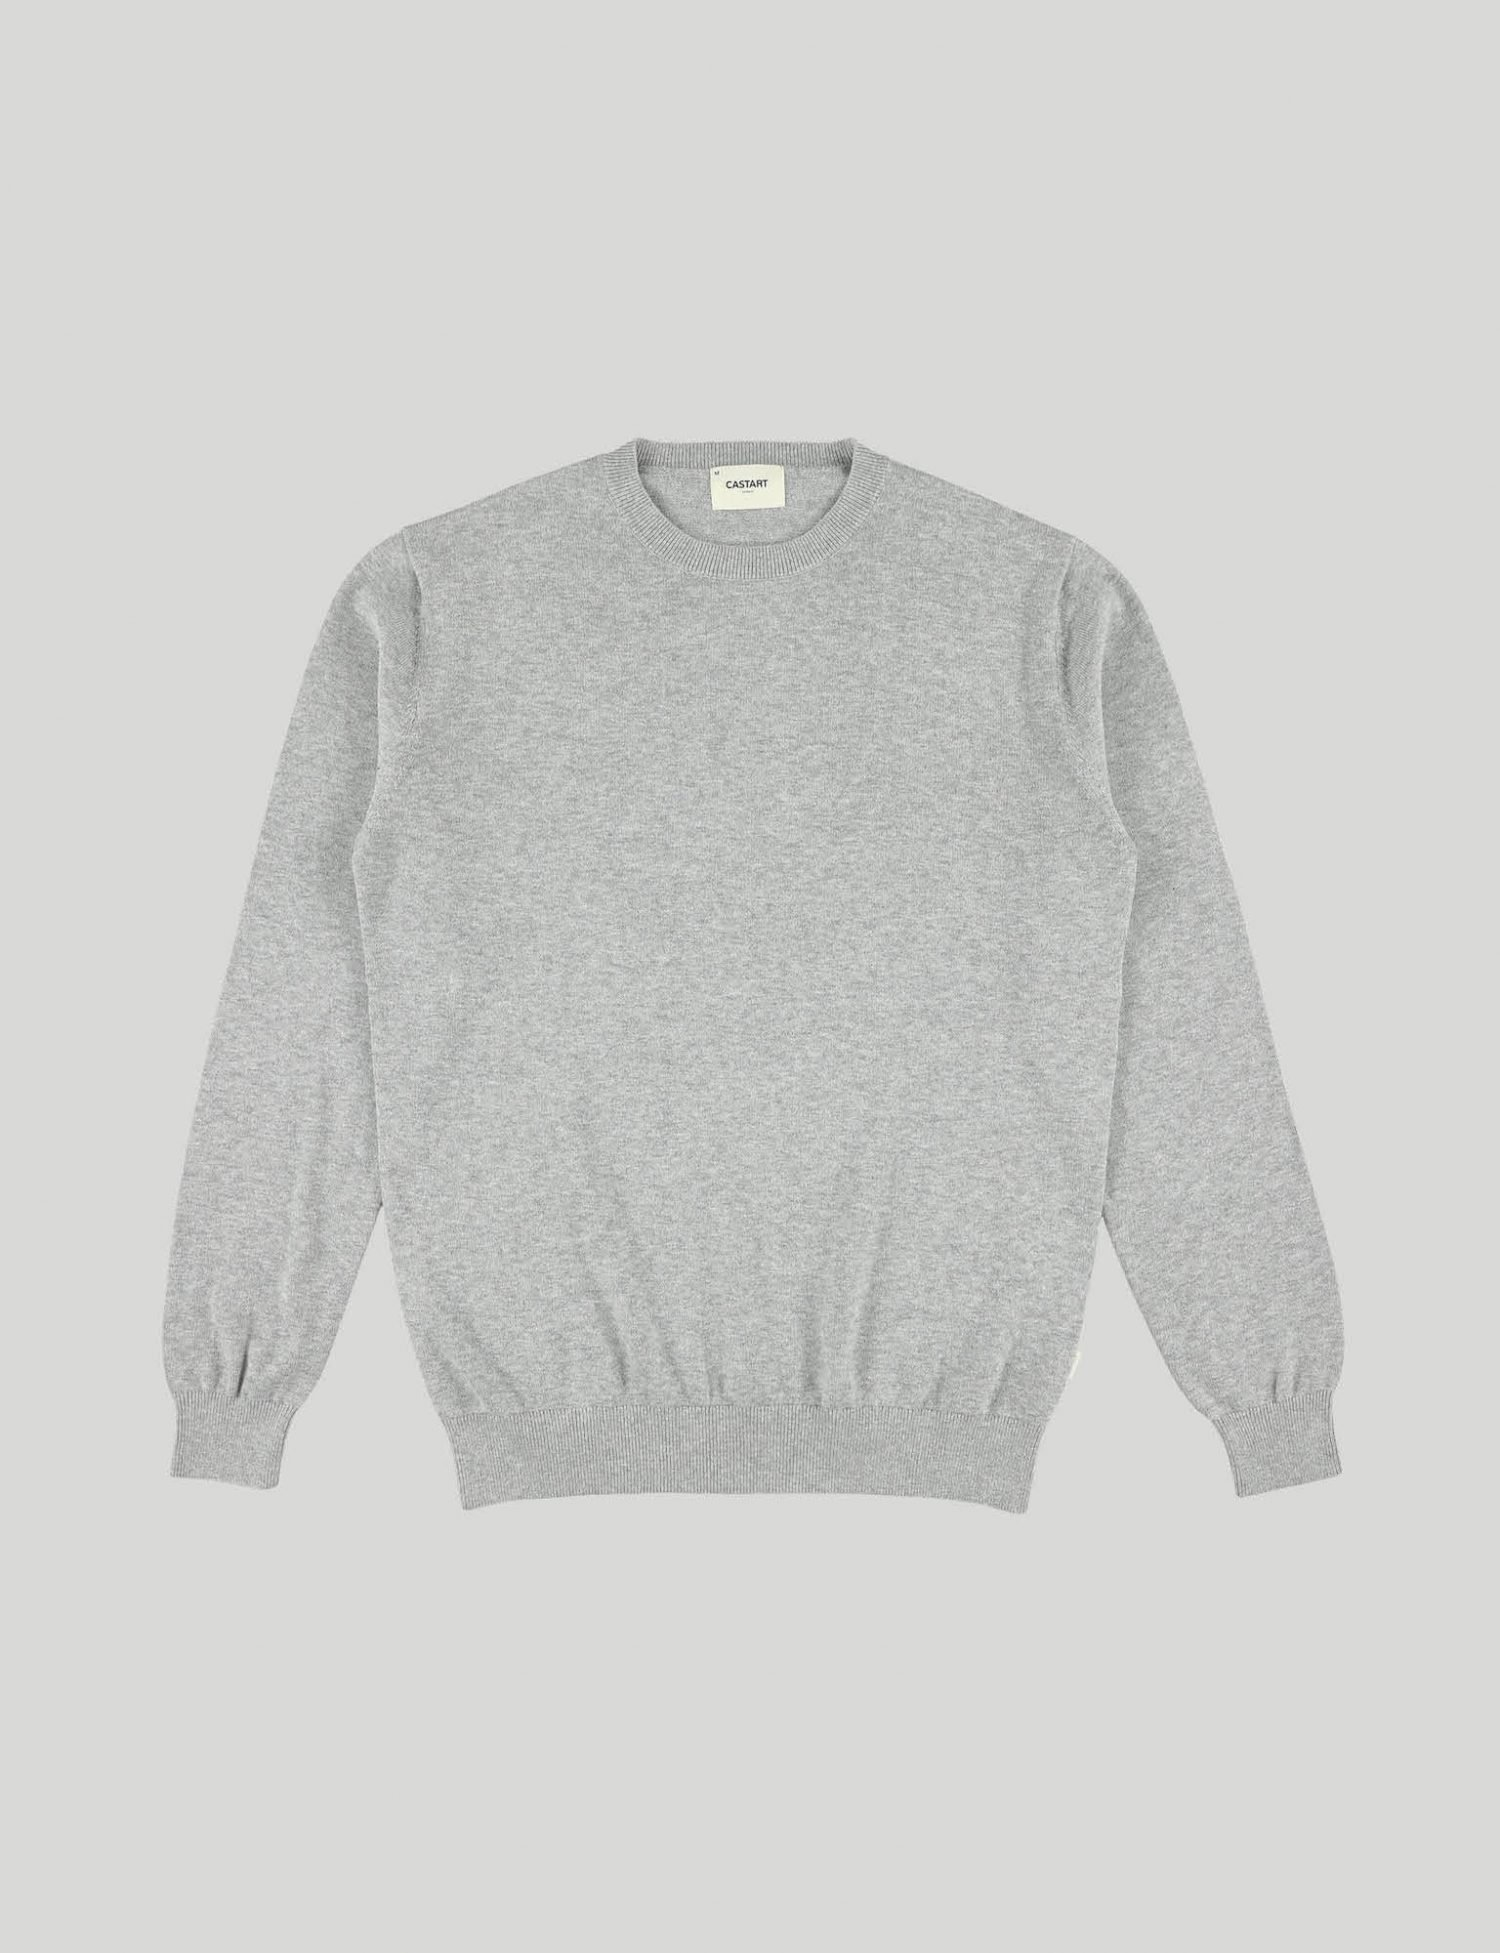 Castart - Shrubs knitwear - Mid Grey